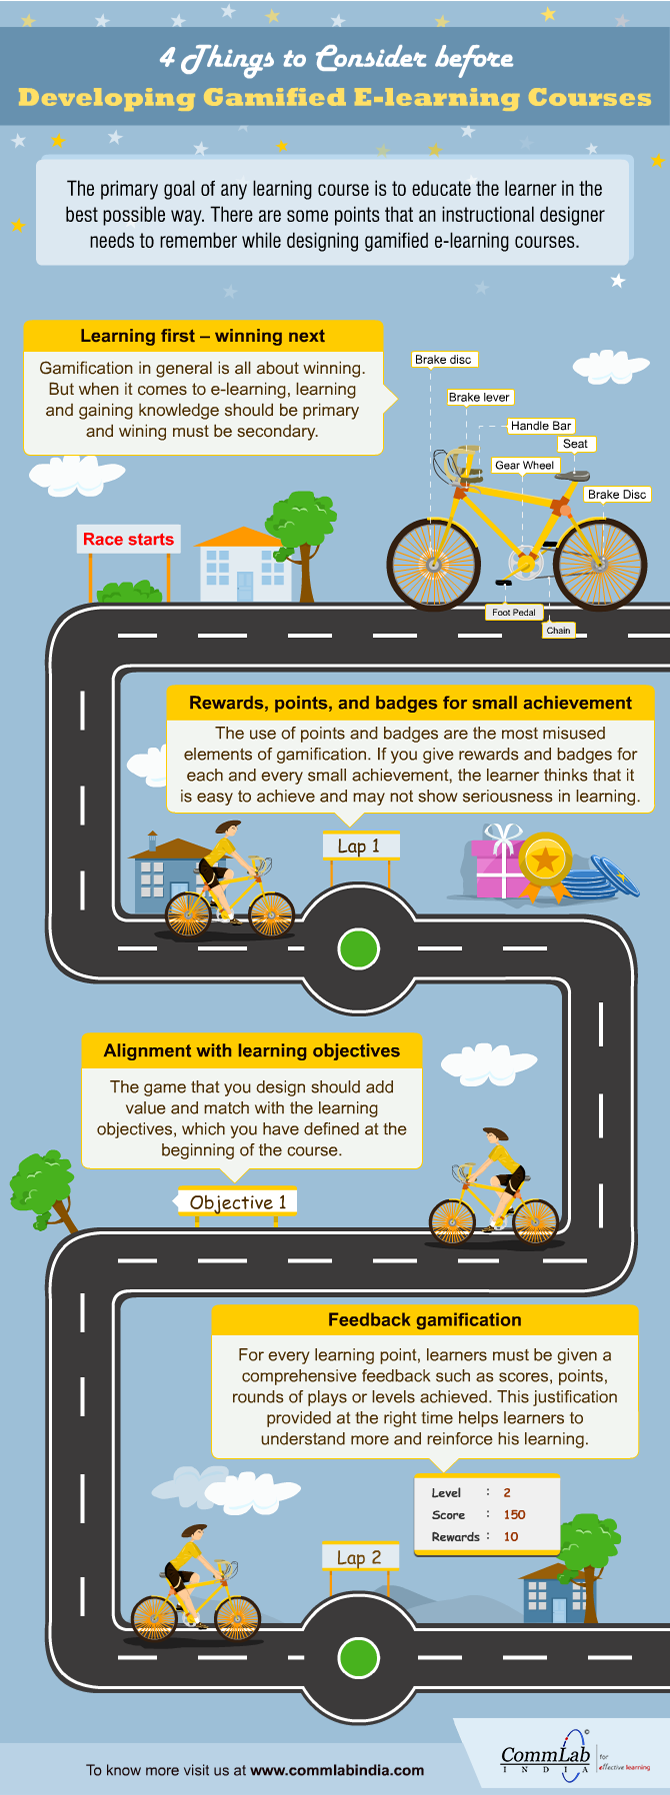 E-learning Design: Leveraging Game Elements in Online Courses [Infographic]